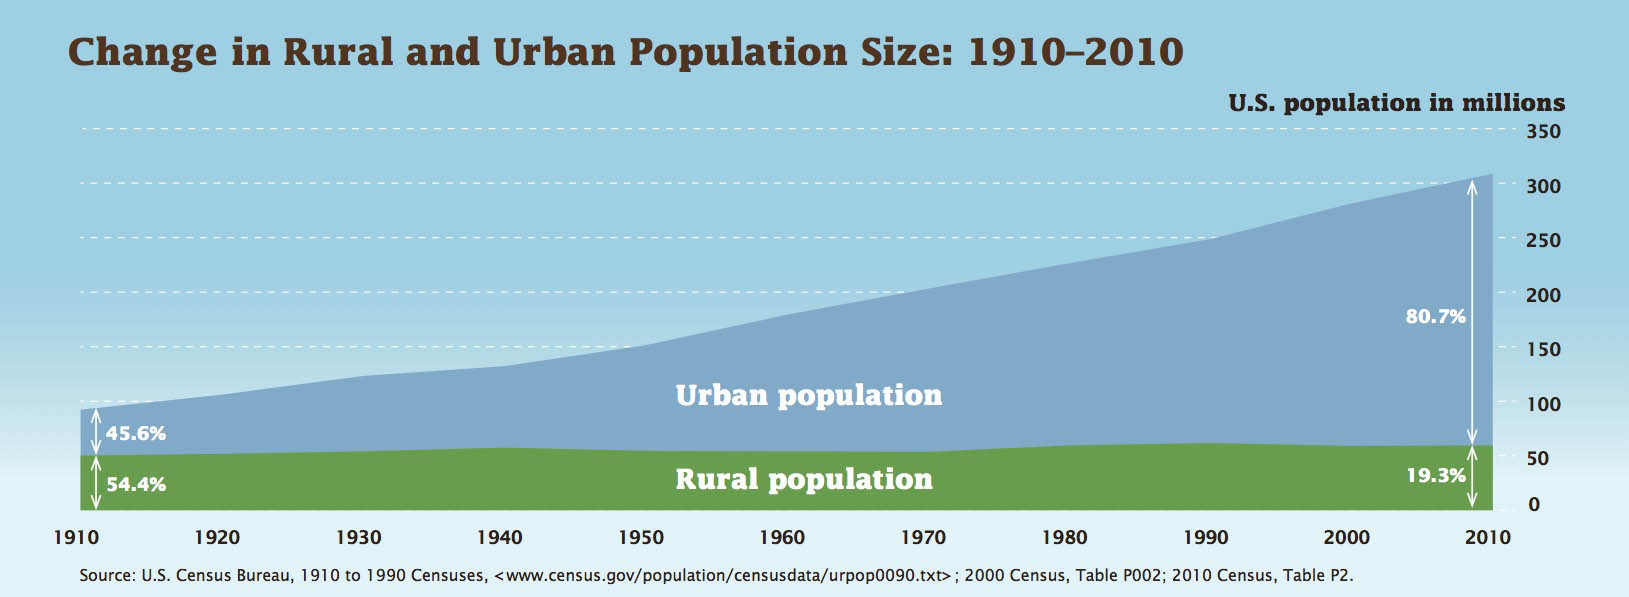 change_in_rural_urban_pop_1910-2010